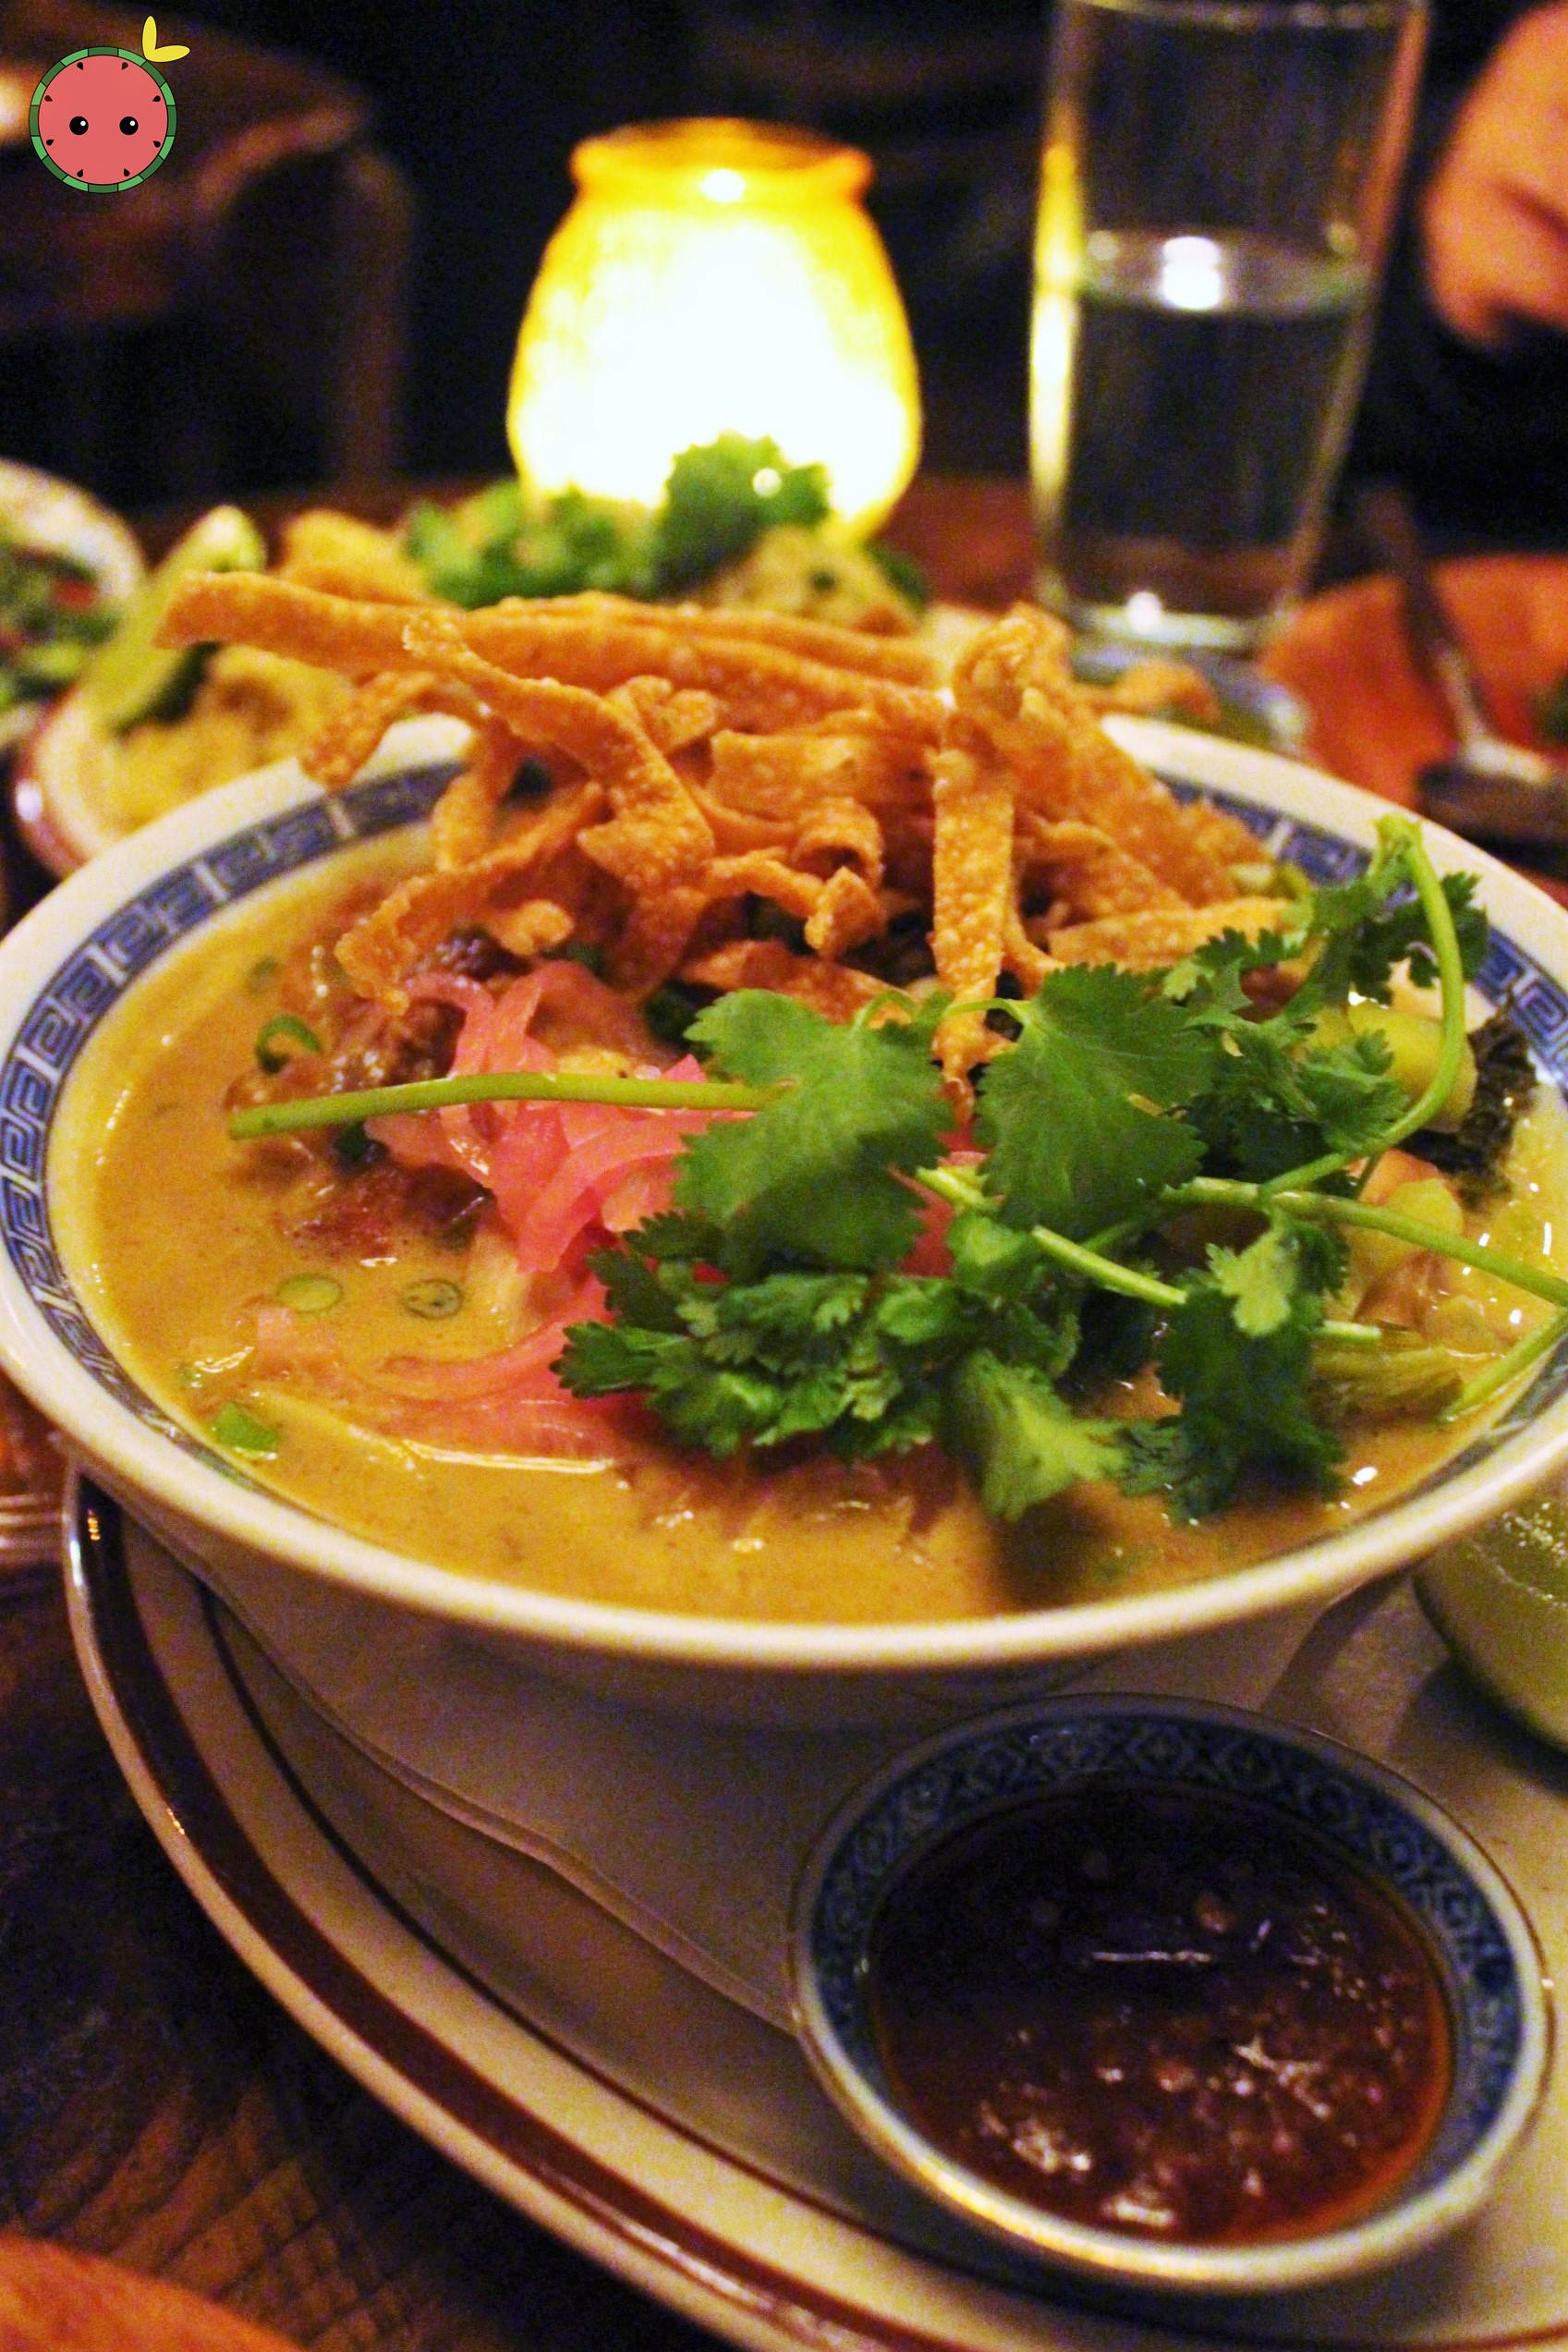 Khao Soi Kaa Gai - Northern style golden curry with homemade egg noodles, chicken leg, pickled musta